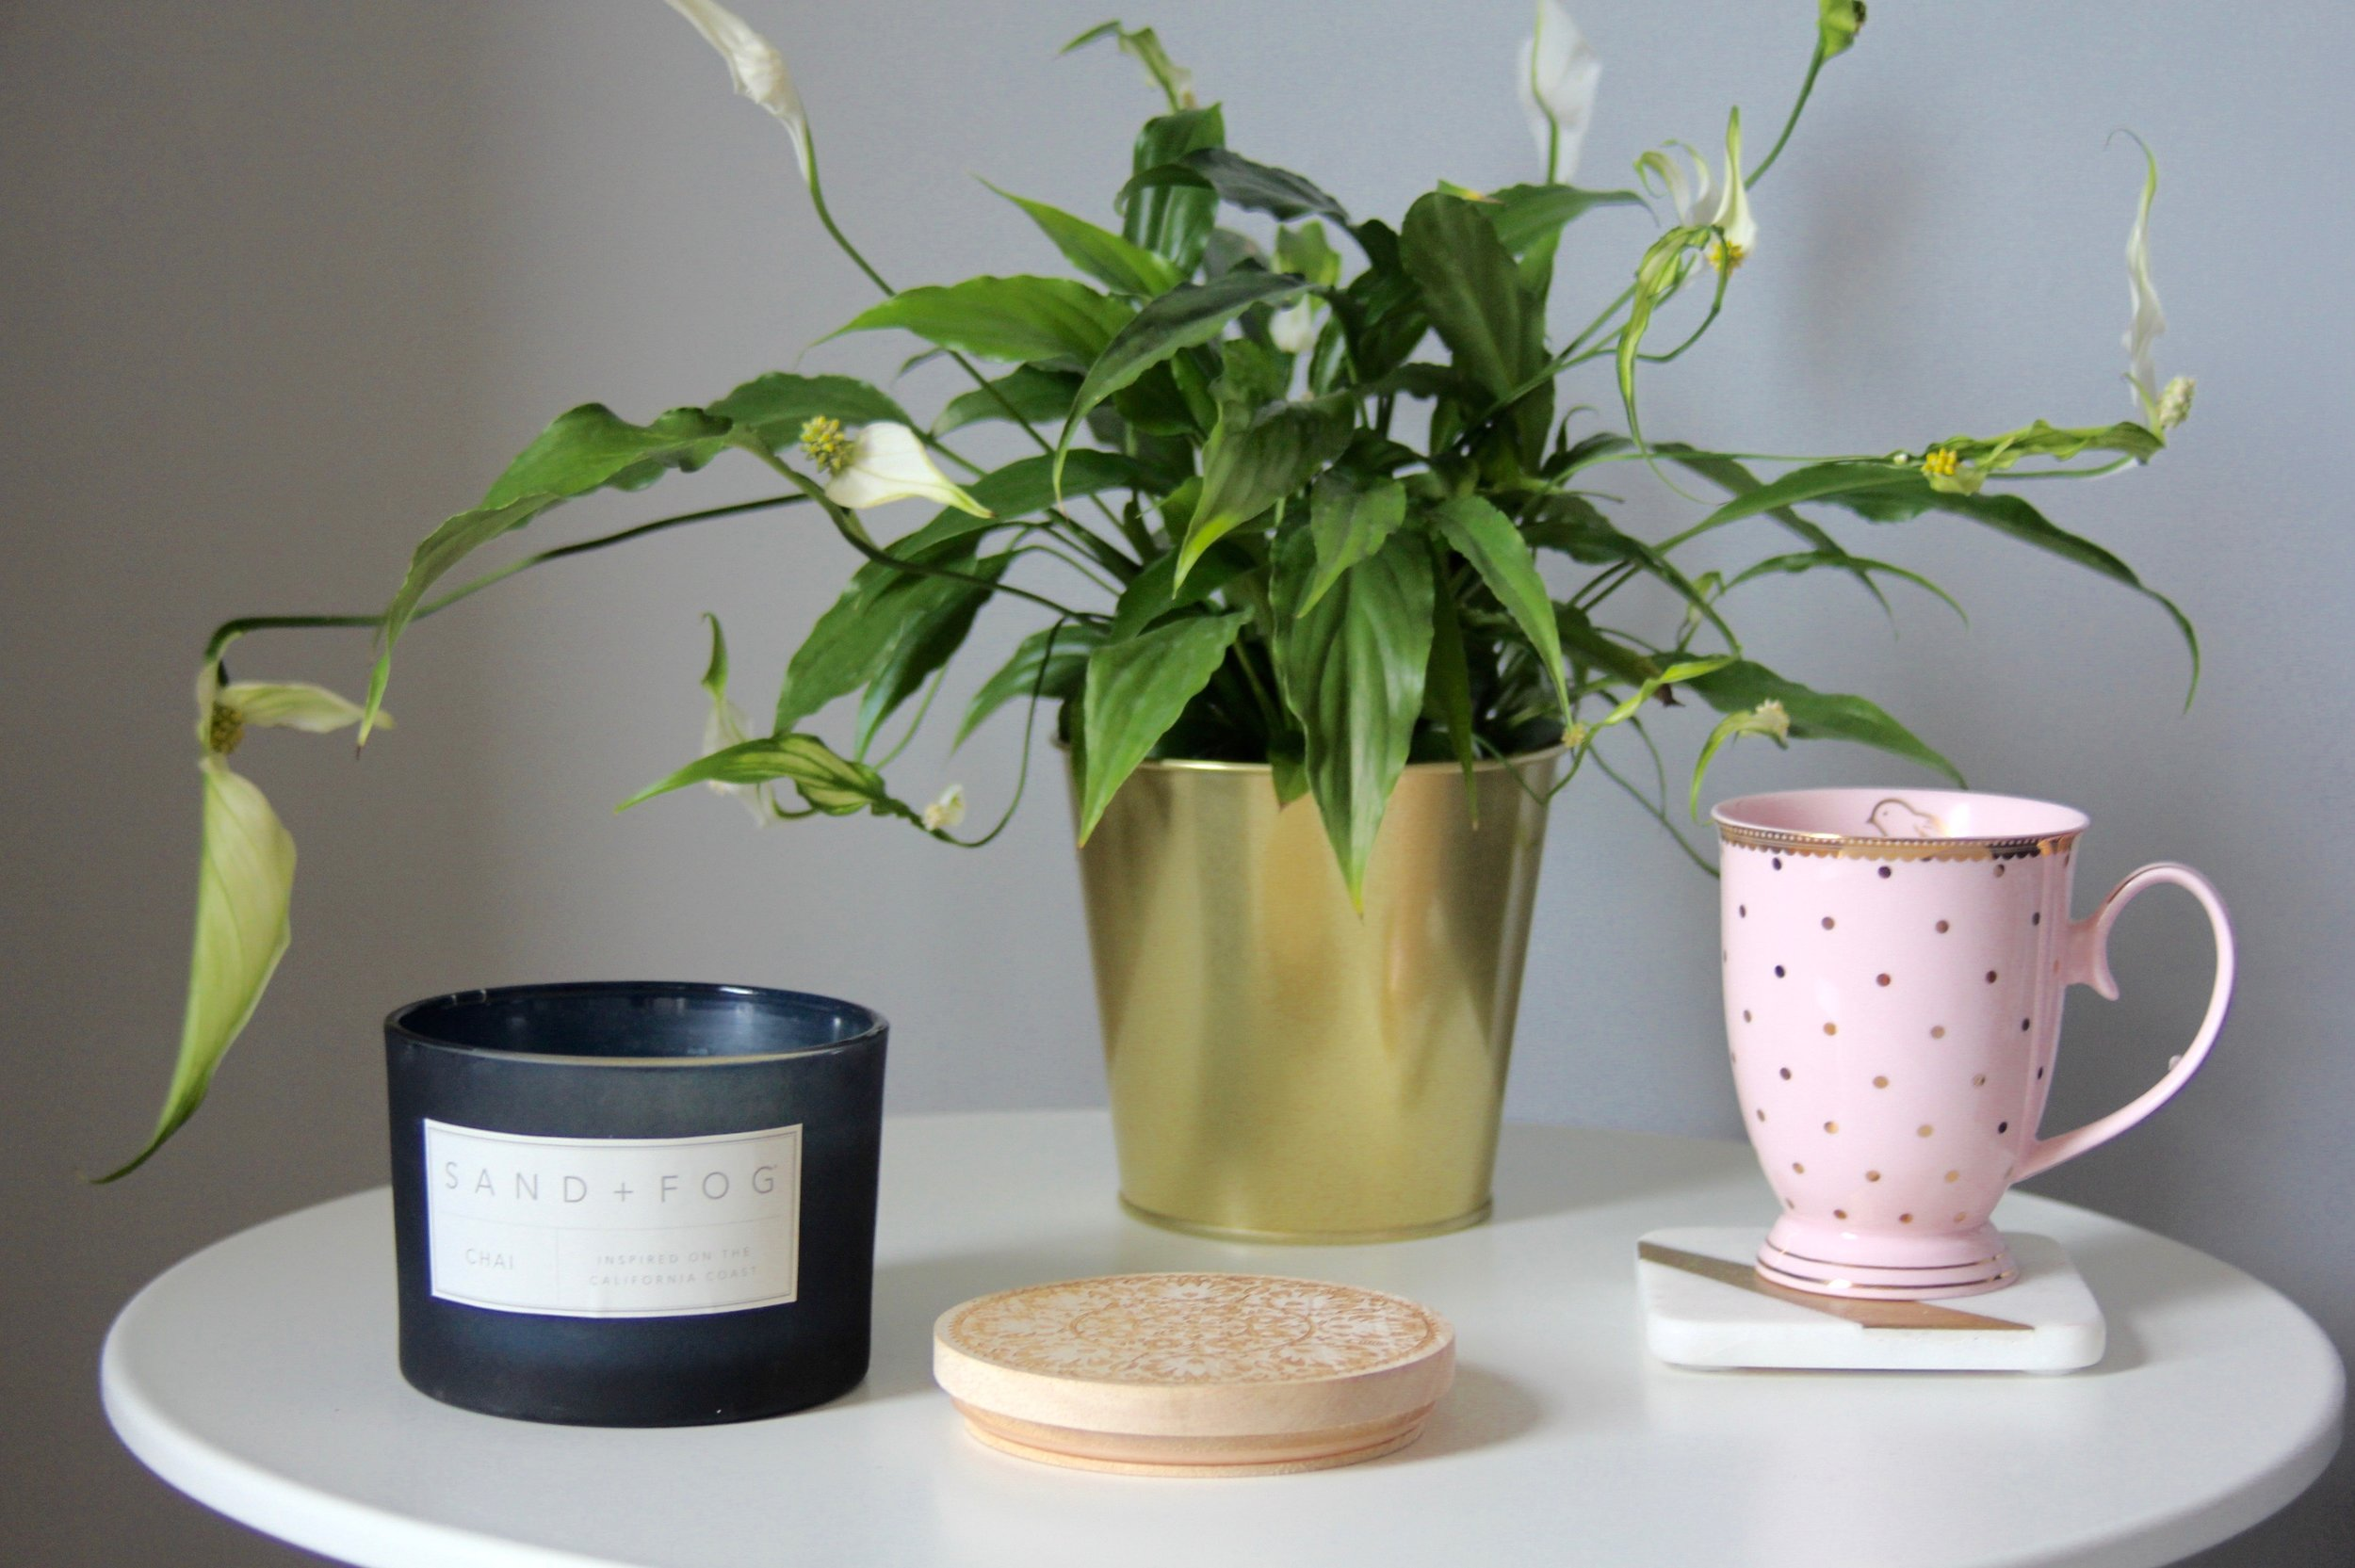 The Style Stories autumn candles